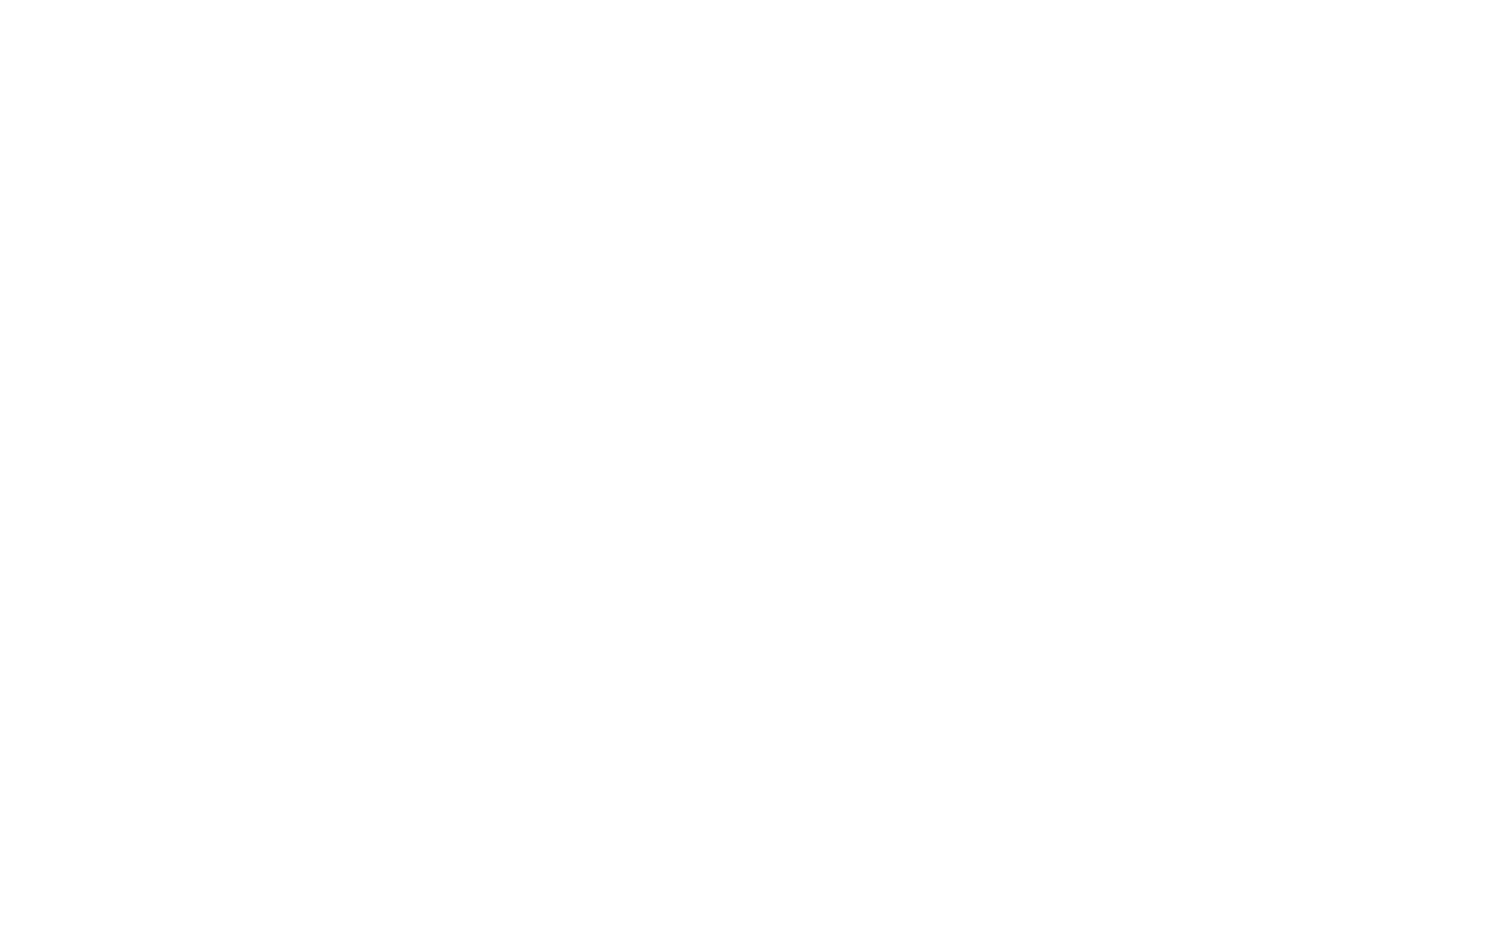 Soul Tavern - Miami Beach Vegetarian Dining and Bar